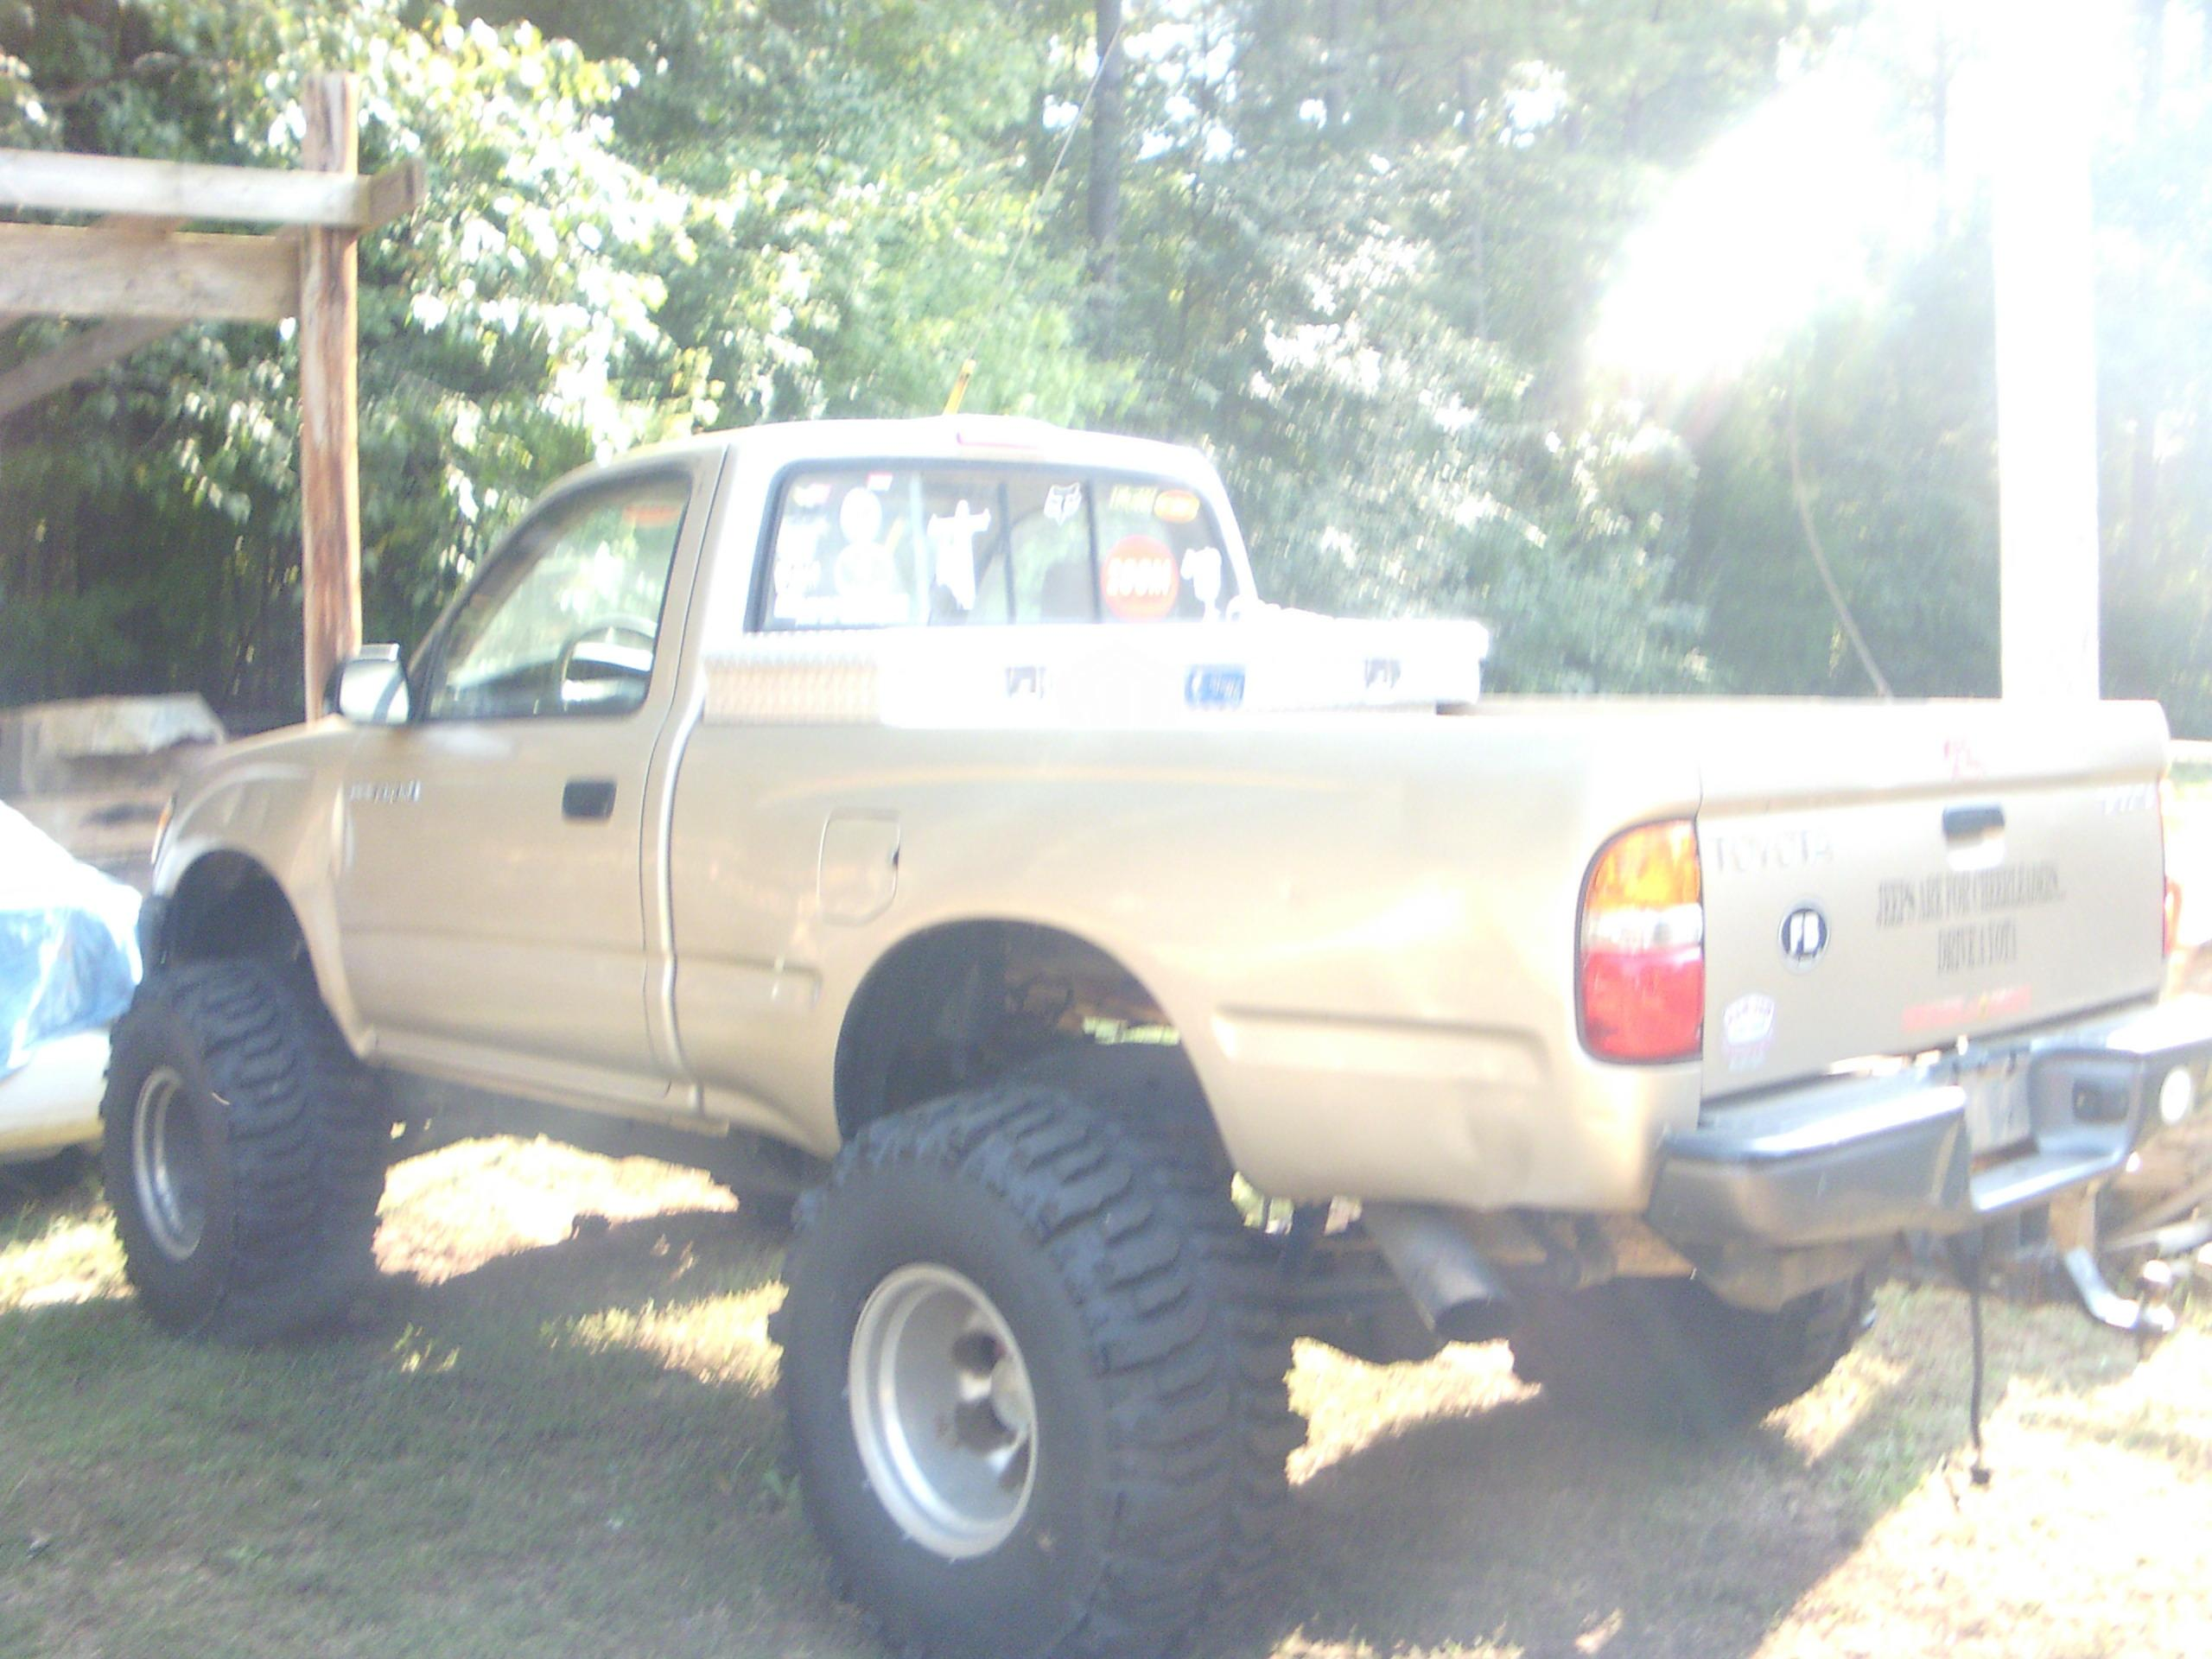 stuckiniraq37's 2001 Toyota Tacoma Regular Cab